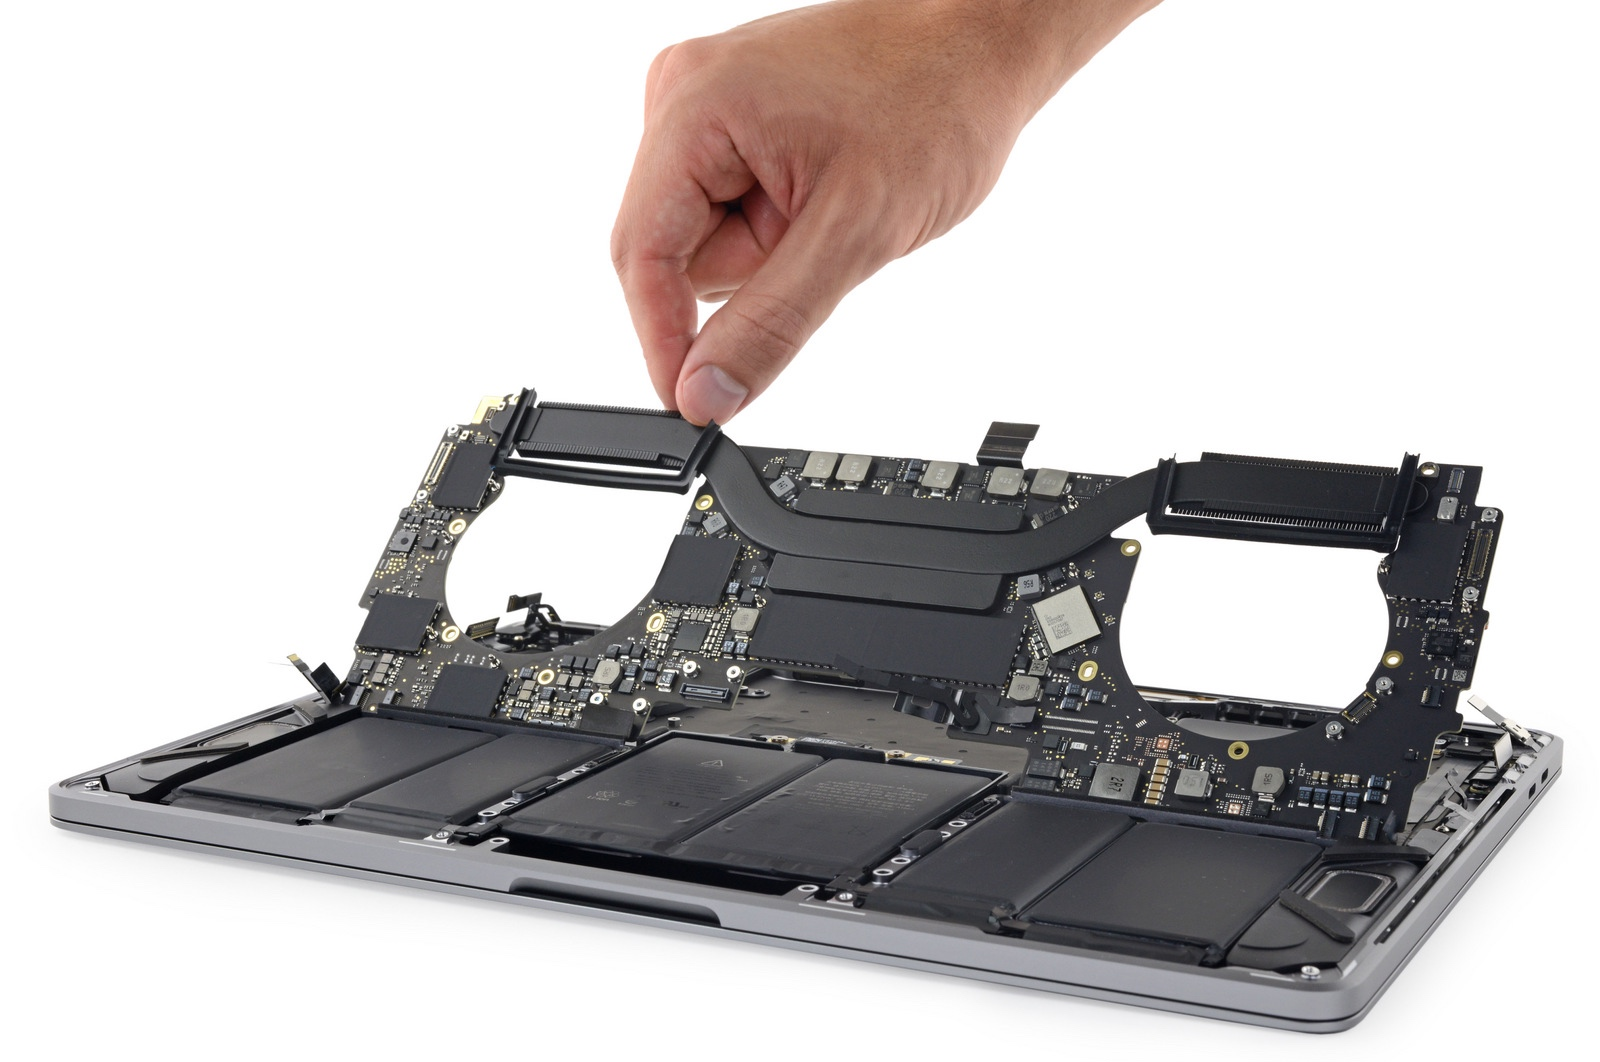 macbook pro 2018 teardown zeigt gr eren akku neu. Black Bedroom Furniture Sets. Home Design Ideas